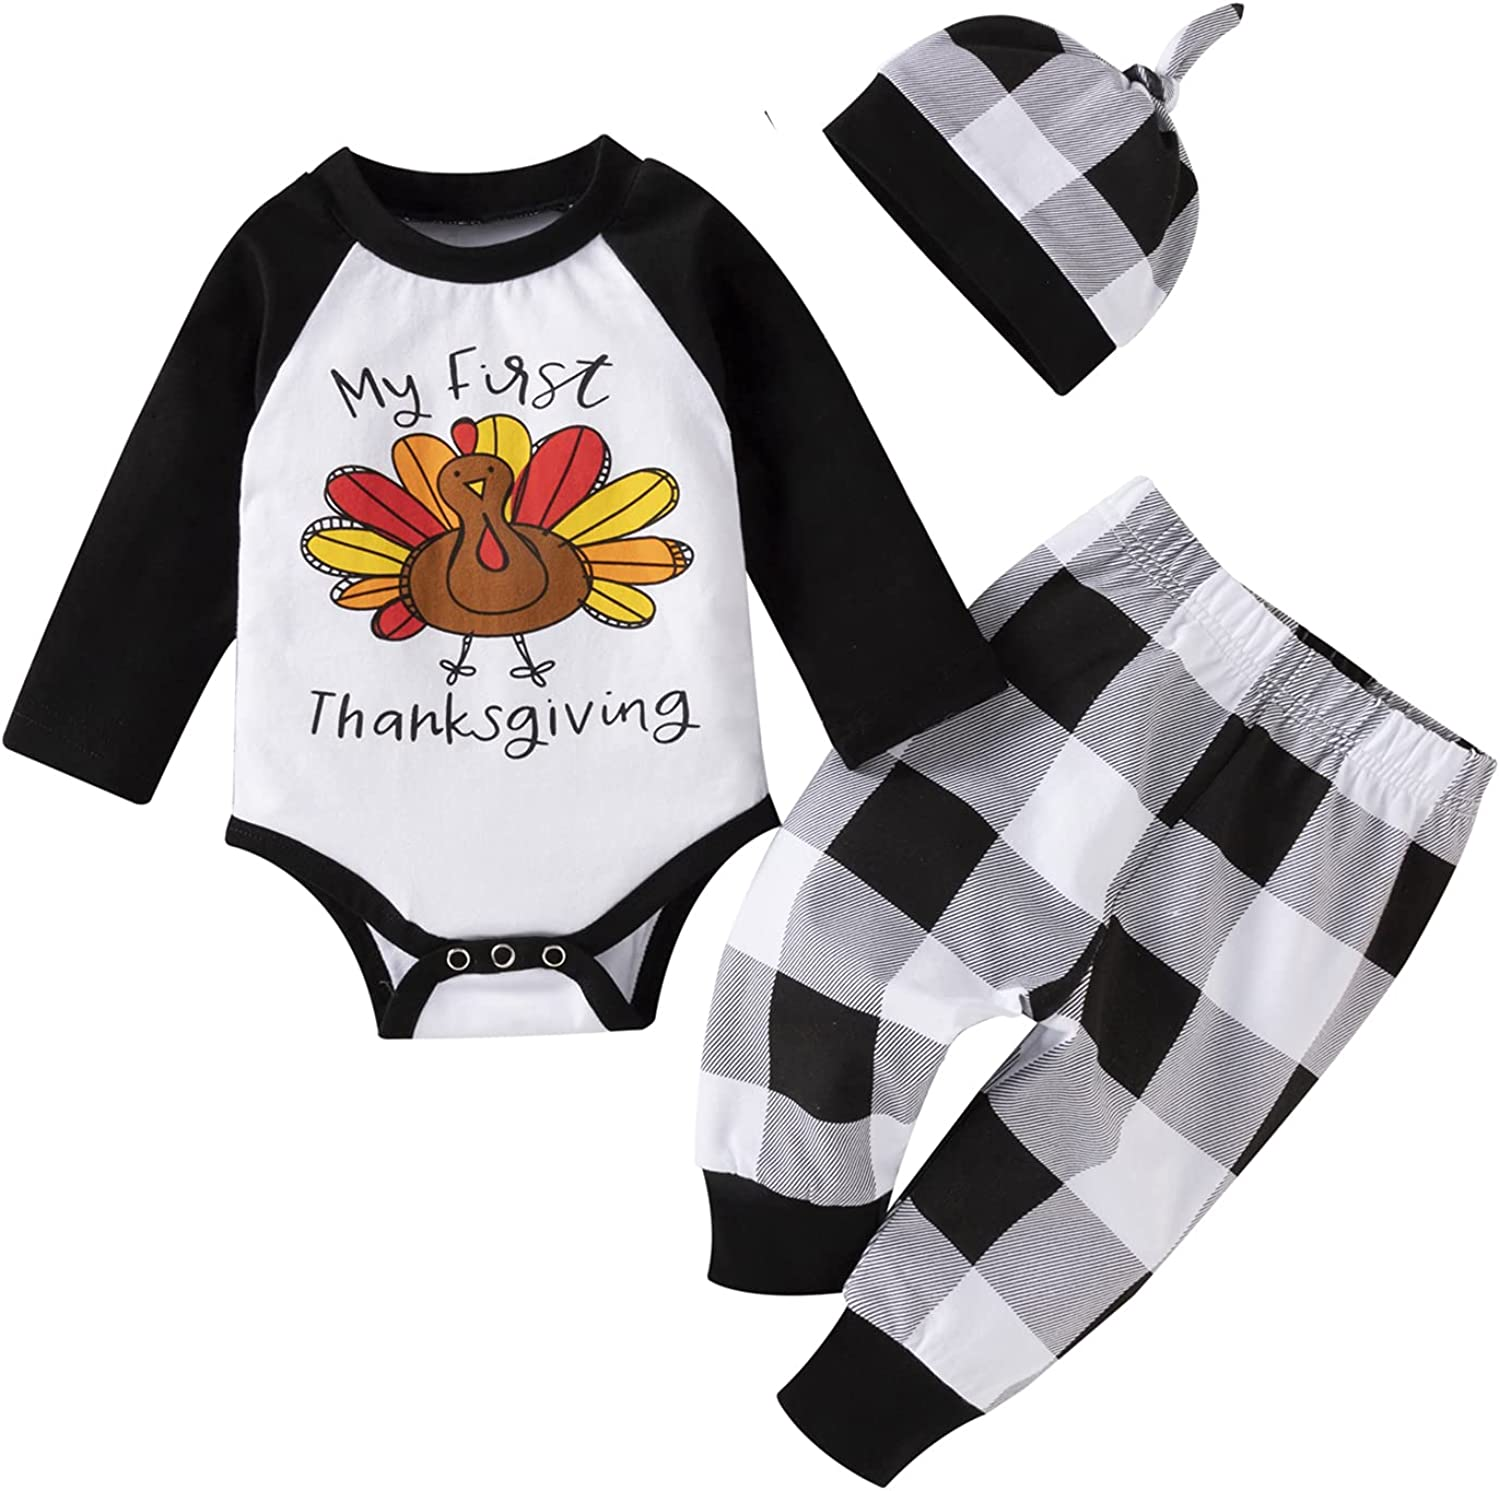 Thanksgiving Day Baby Boy Clothes Baby Boy'S First Thanksgiving Long Sleeve Romper Pumpkin Turkey Print+Pants+Hat 0-18 Months